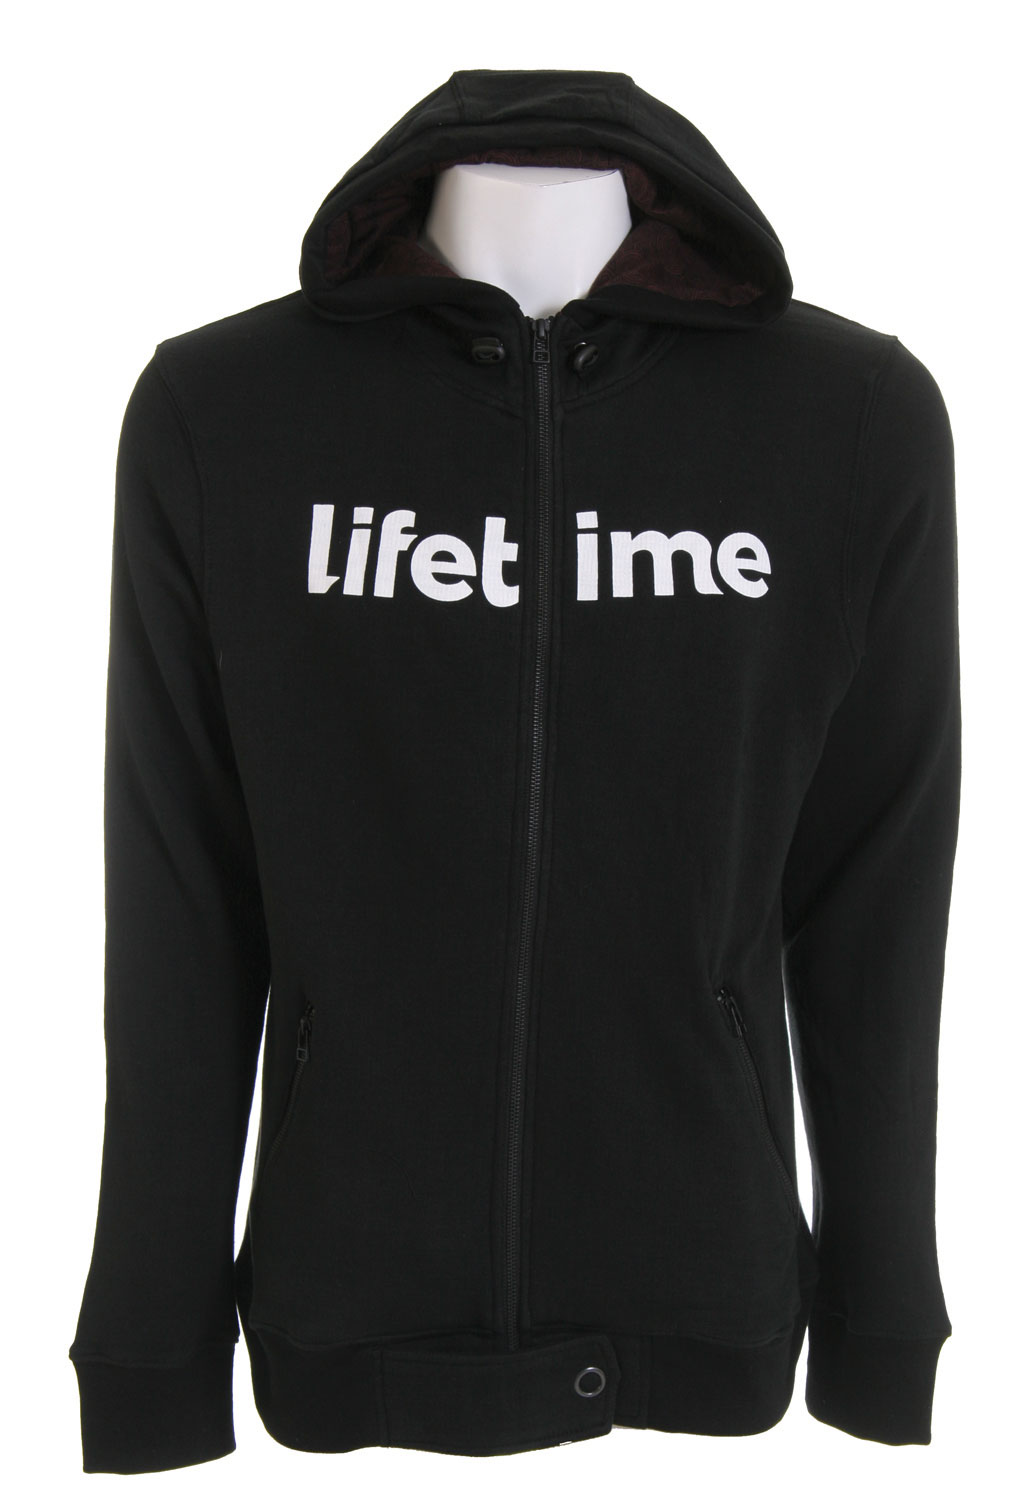 "Skateboard This Lifetime hoodie blends simple style and edgy fashion to a ""T""A! The Lifetime Collective Photo Incentives Hoodie is 100% cotton and heavyweight for all weather conditions. Take it from the skate park to school with ease! It features a YKK zip closure, logo zip hood, and is constructed of solid fleece. The lined hood has contrasting custom circles that set this hoodie apart from the pack. Wherever you go, go there in style with this great hoodie from Lifetime.Key Features of The Lifetime Collective Photo Incentive Hoodie: 100% Cotton Logo Zip Hood Solid Fleece YKK Zip Closure & Zip Welt Pockets CF Hem Flap Cover with Open Ring Snap Custom Circles Printe Lined Hood Logo Screenprint on Chest - $48.95"